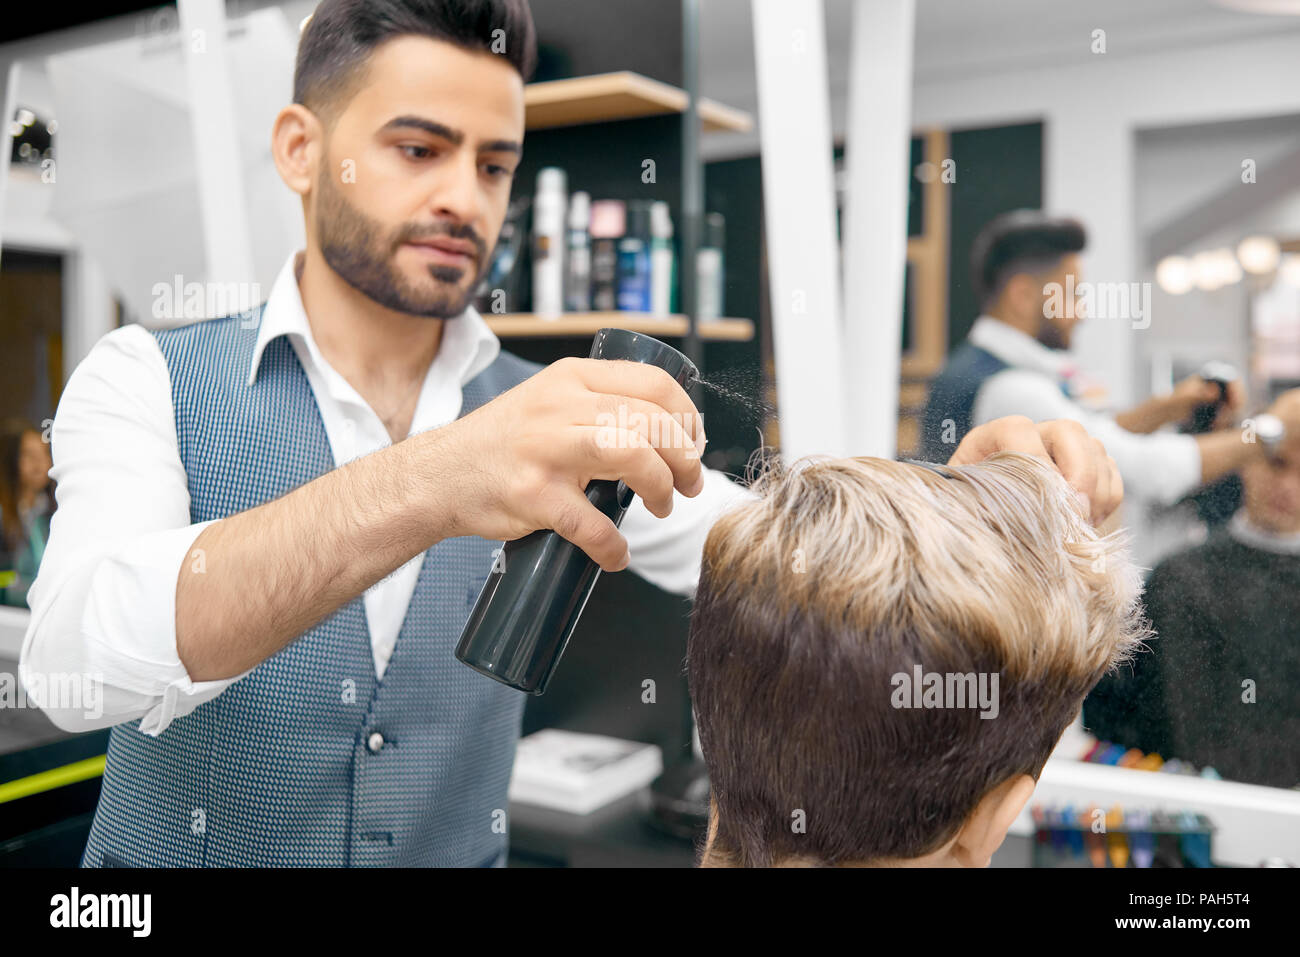 Doing new hairstyle for male model using hard fixation hairspray. Hairdresser wearing classic white shirt, grey waistcoat. Working in front mirror in beaty salon. Hair care products on background. - Stock Image